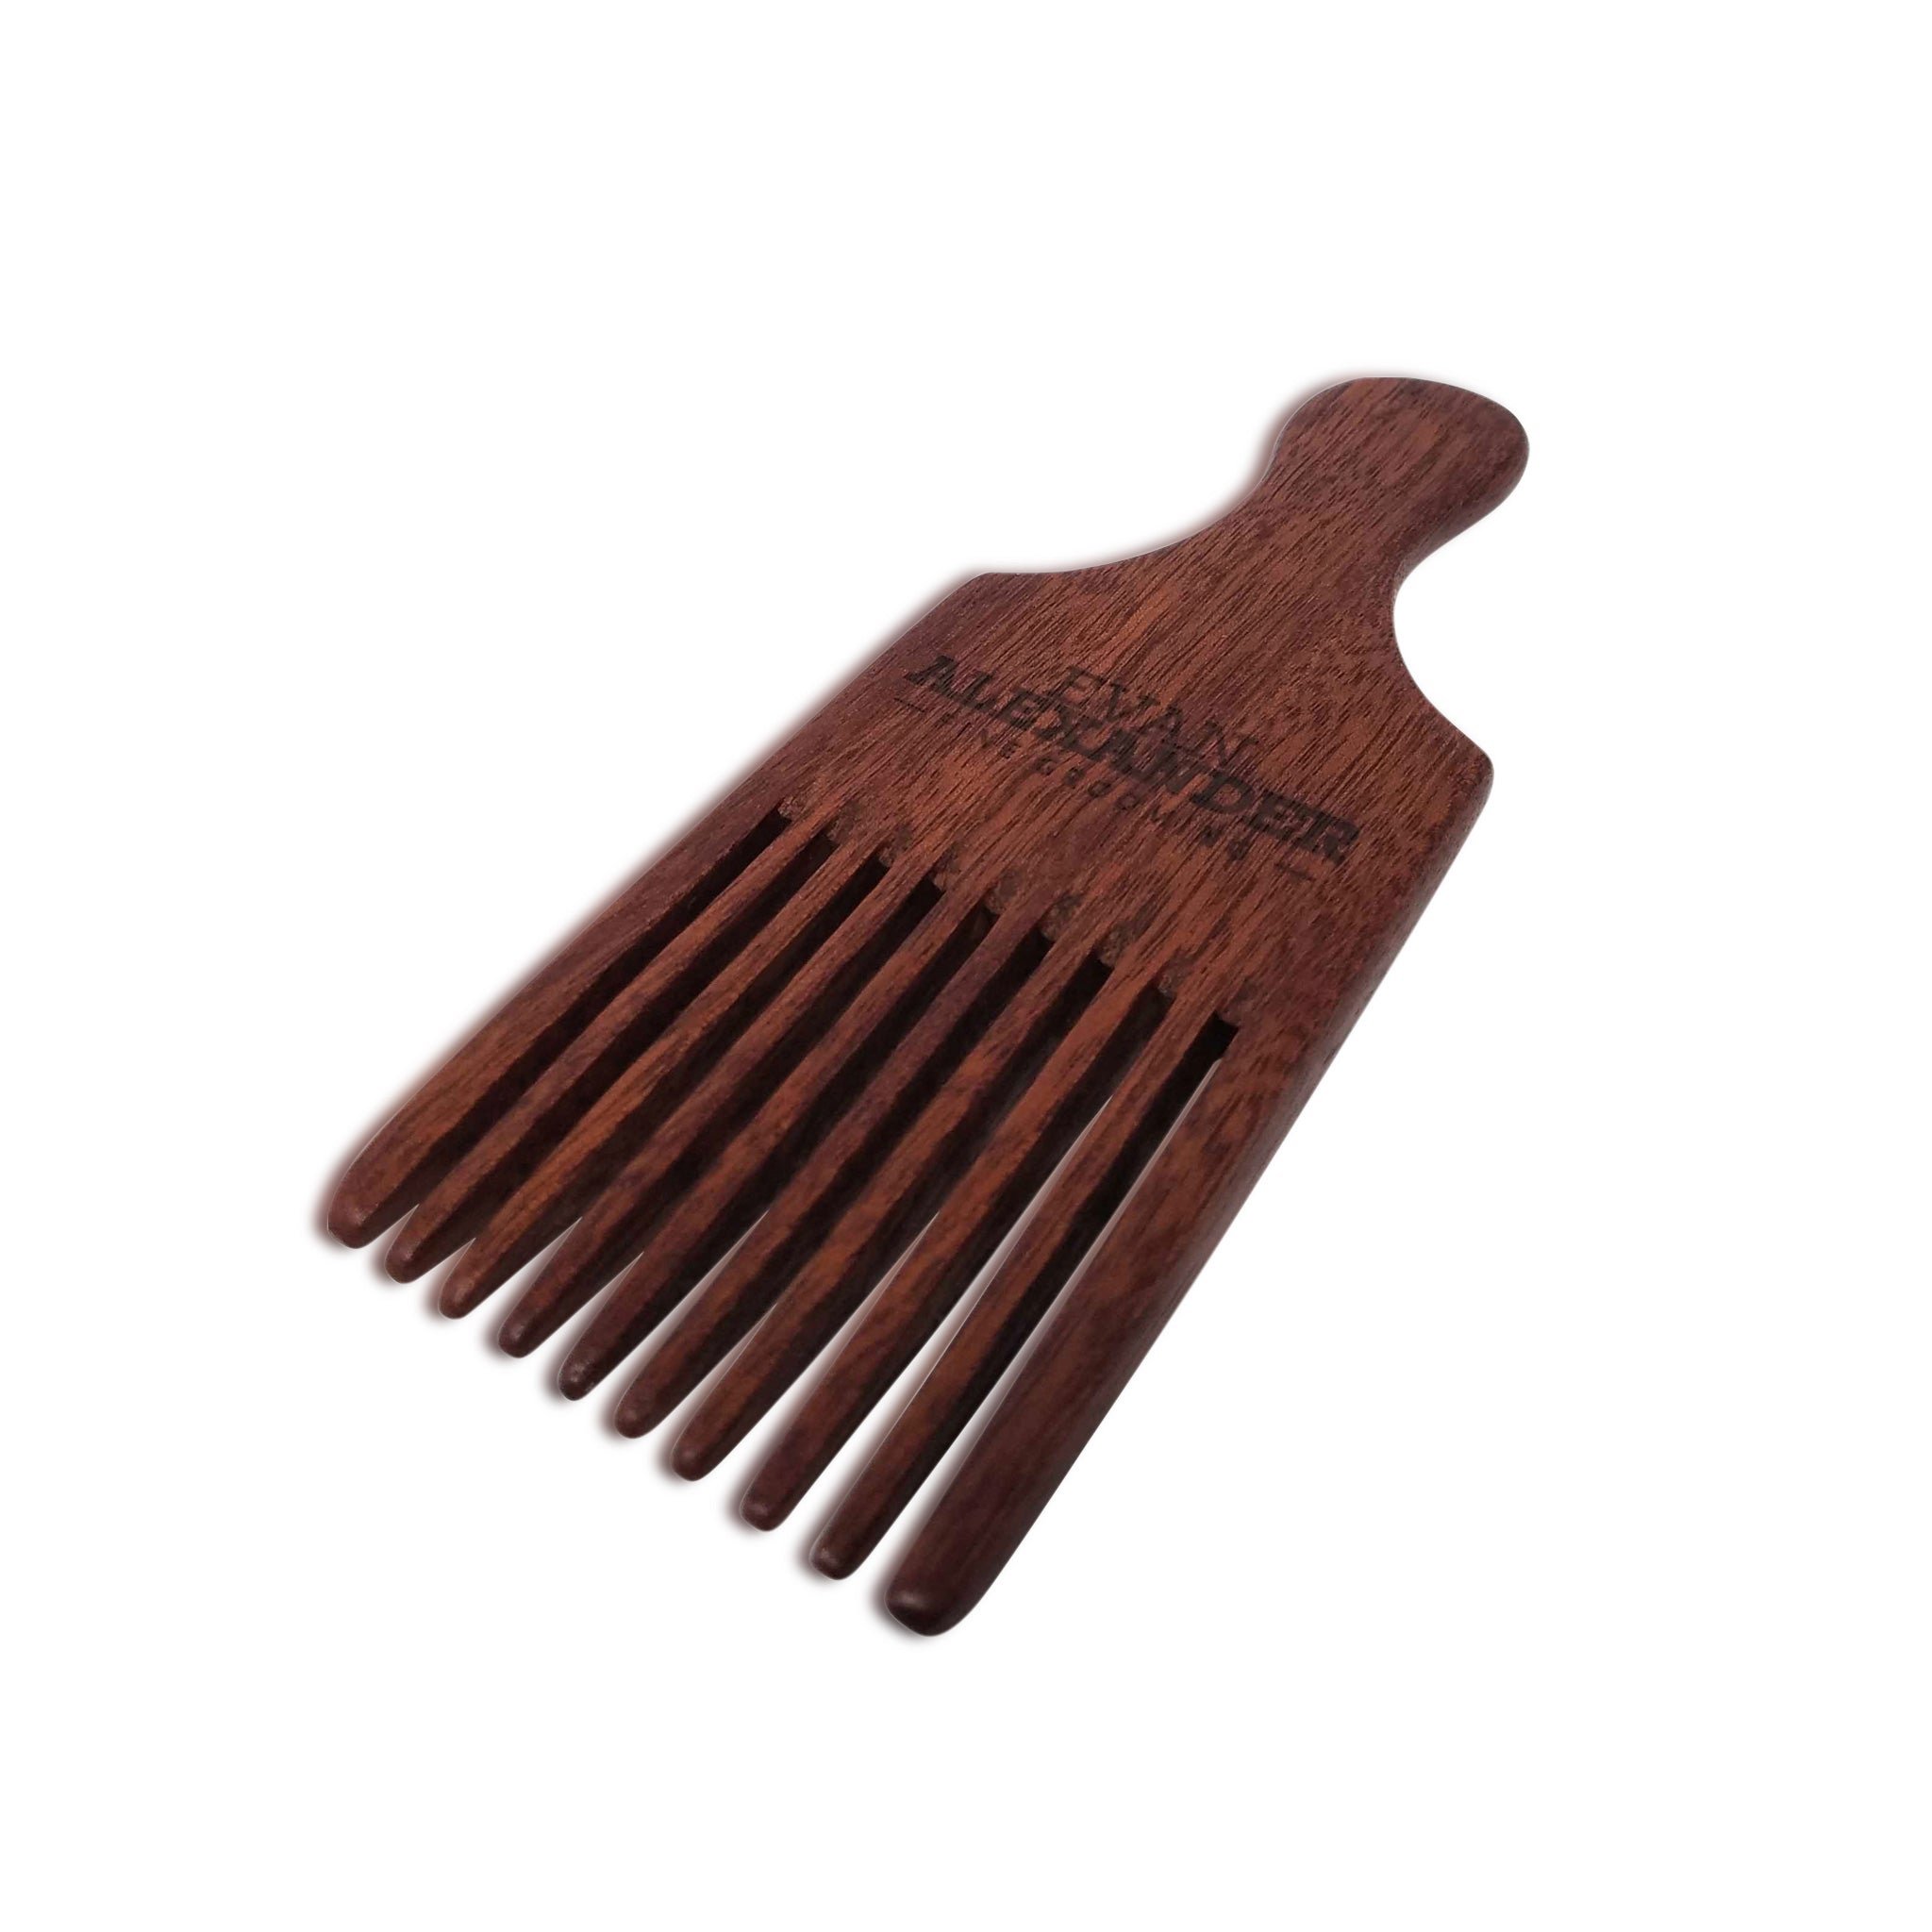 Wooden Beard Pick (Red Sandalwood)